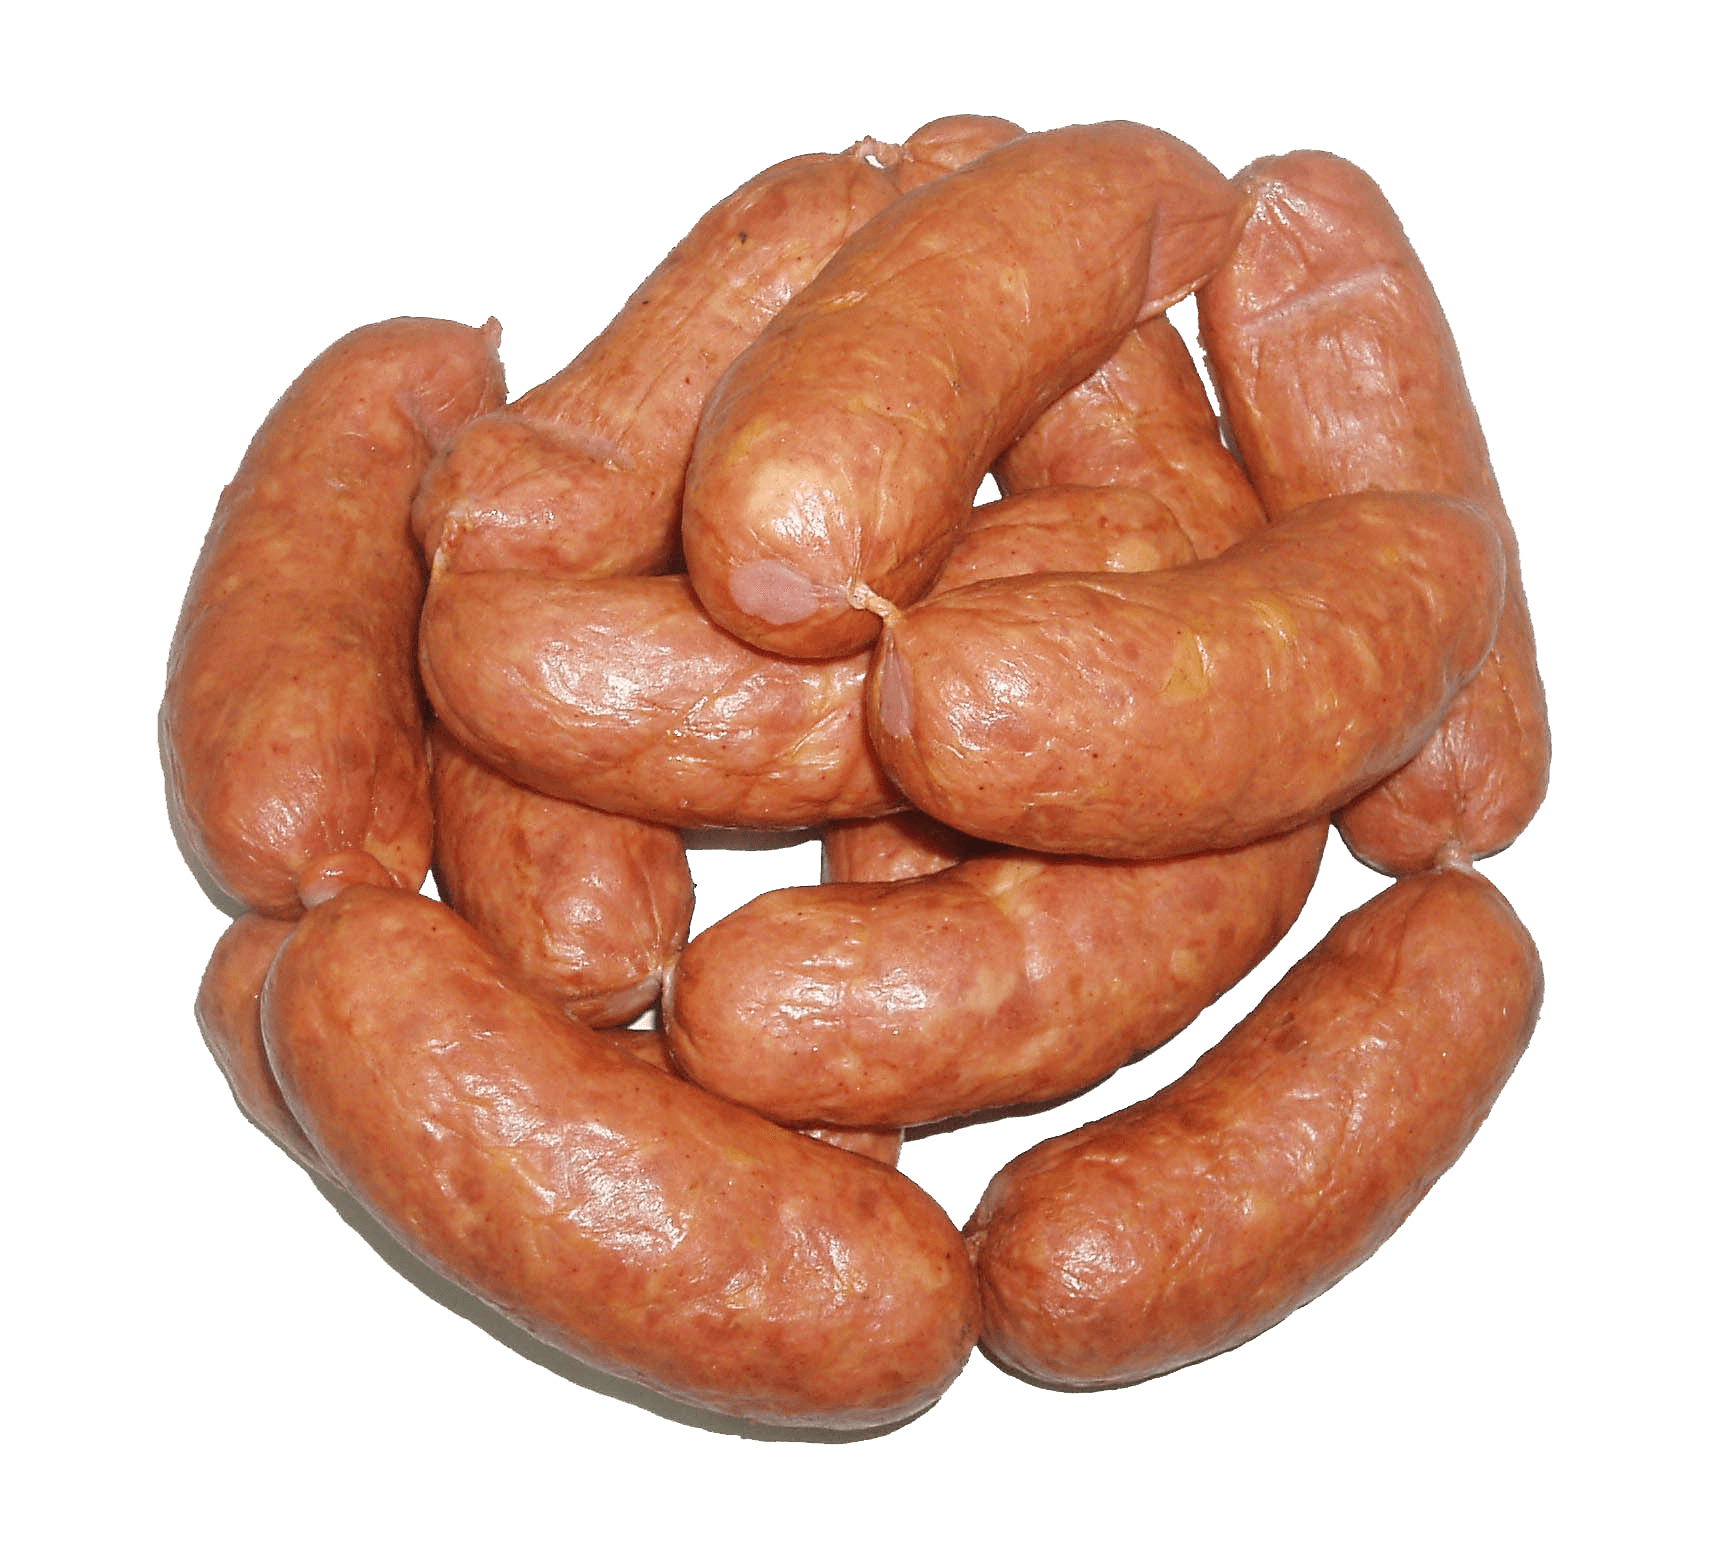 Meat Sausage Png Image PNG Image